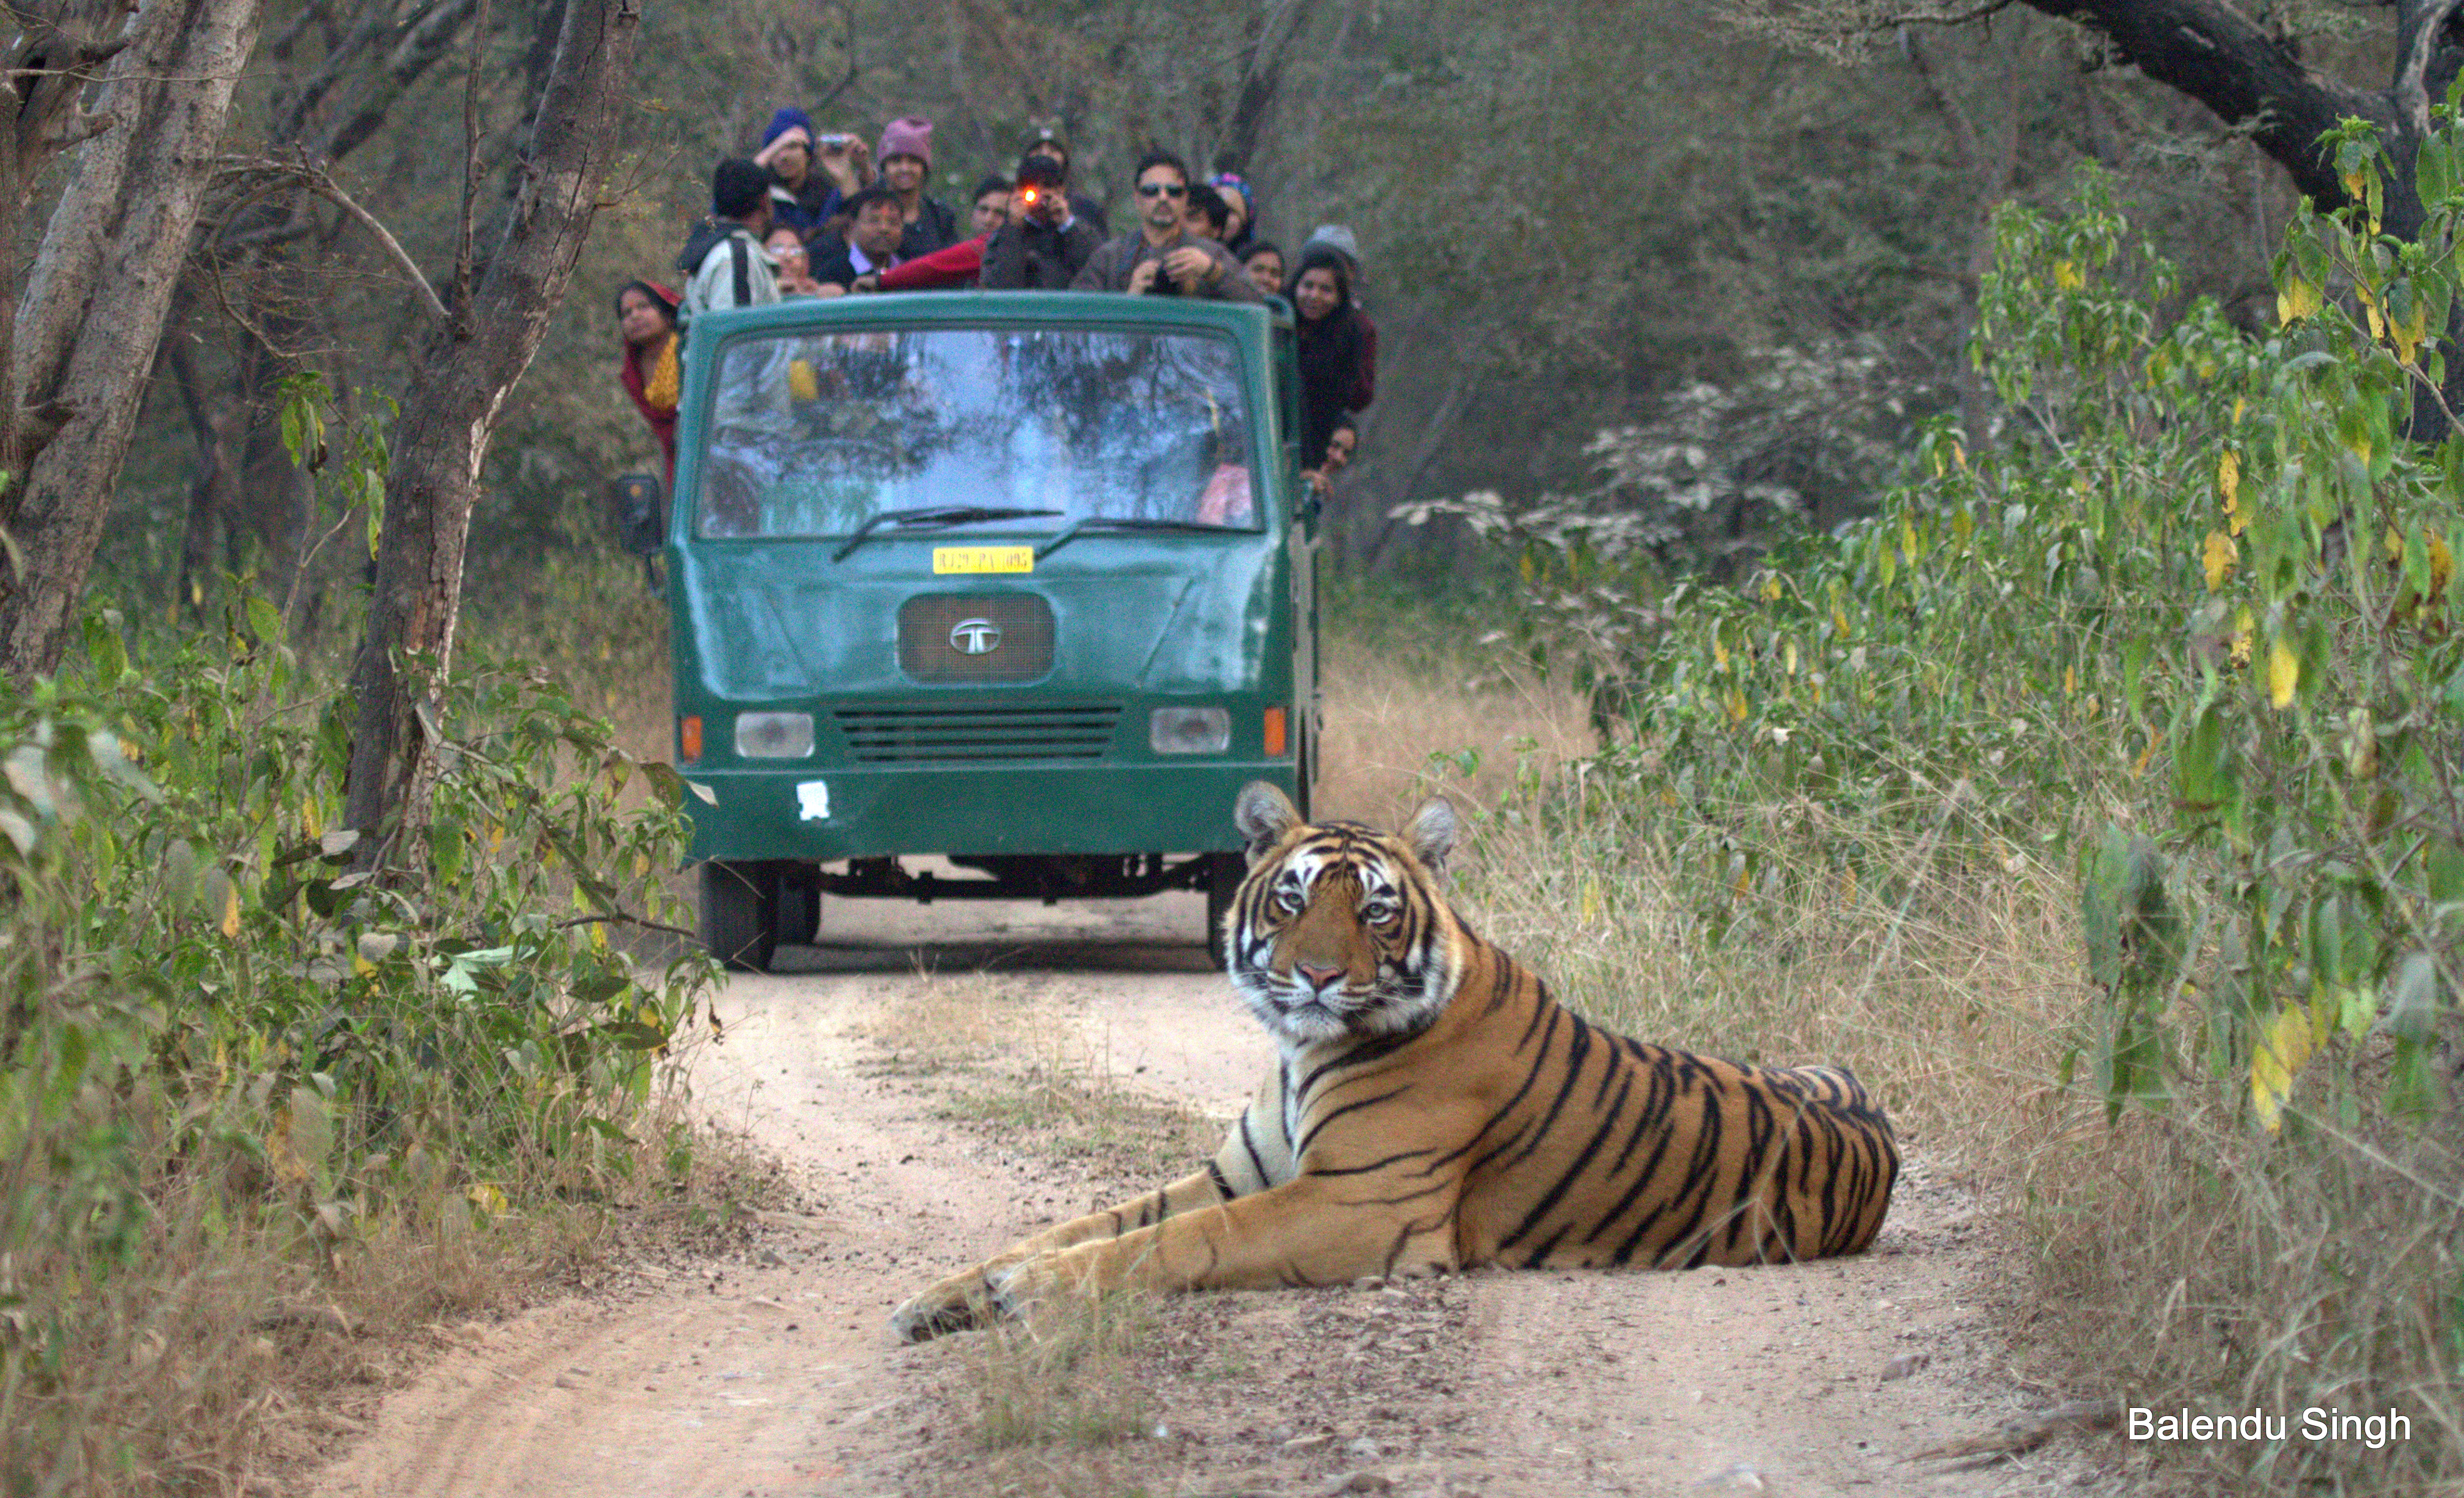 Tiger sighting in Ranthambore